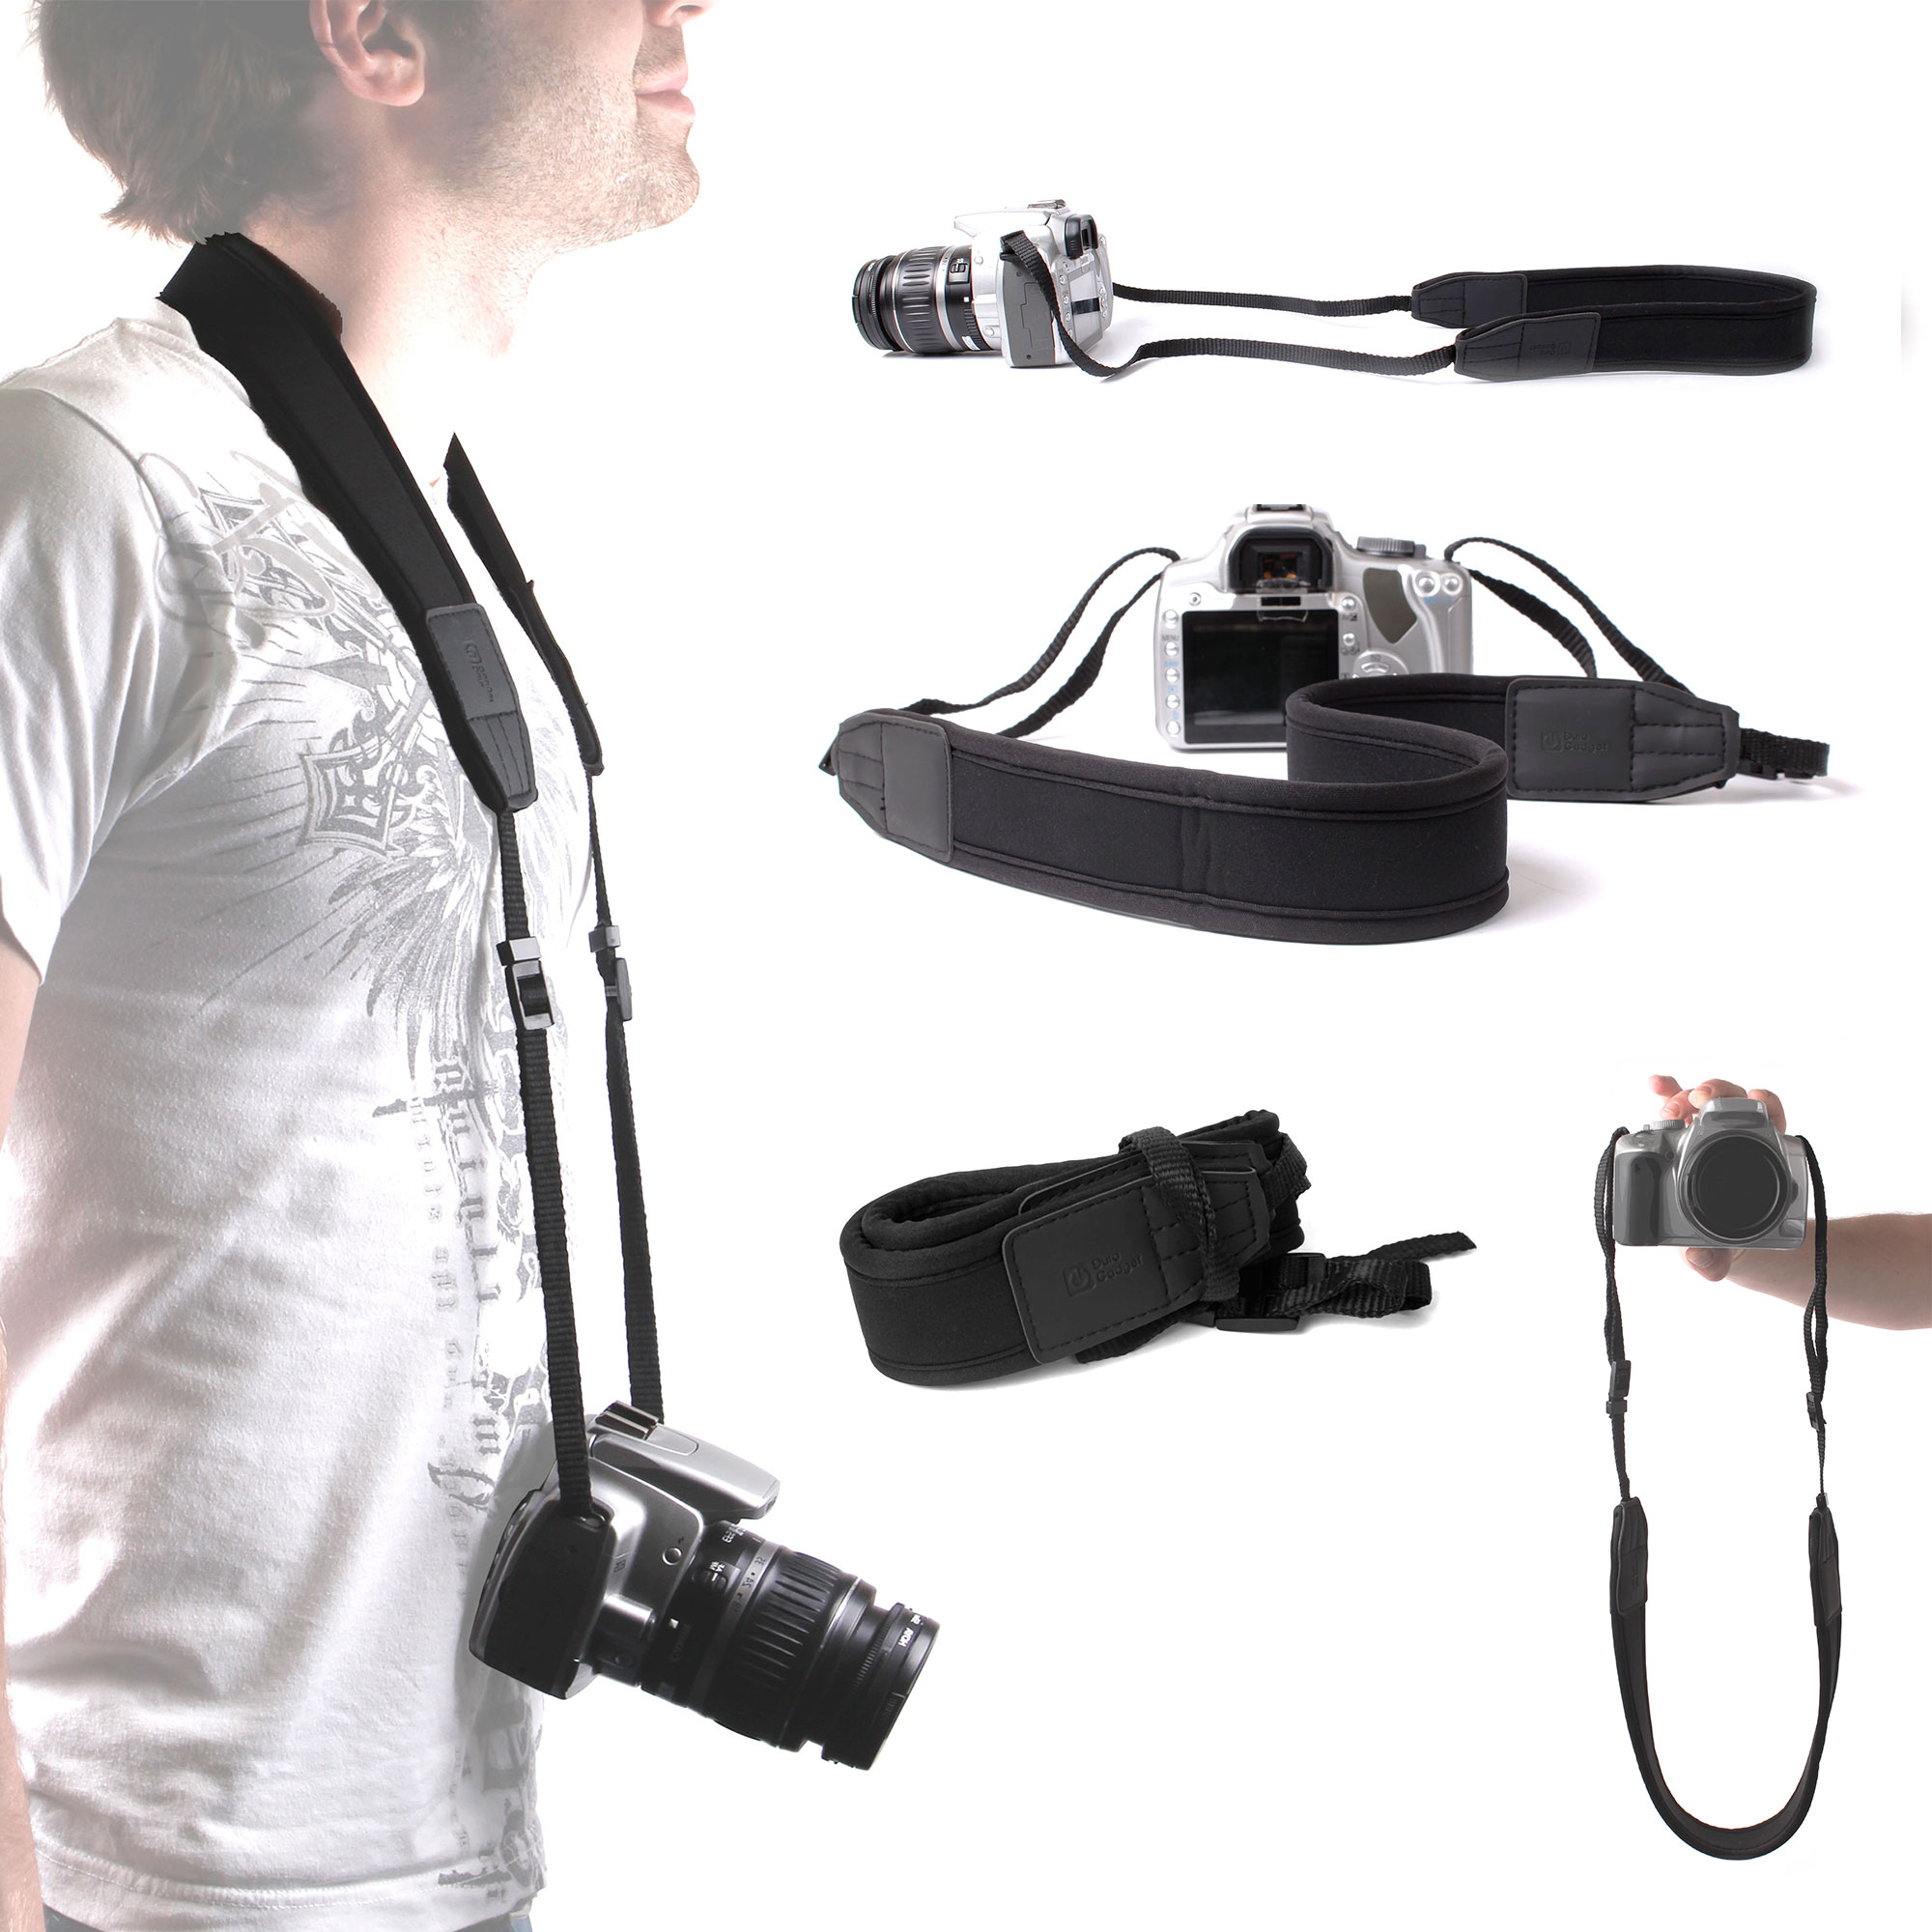 Adjustable Strap For Sony Alpha 57/SLT-A57 SLR Camera With Padded Neck Cushion Enlarged Preview